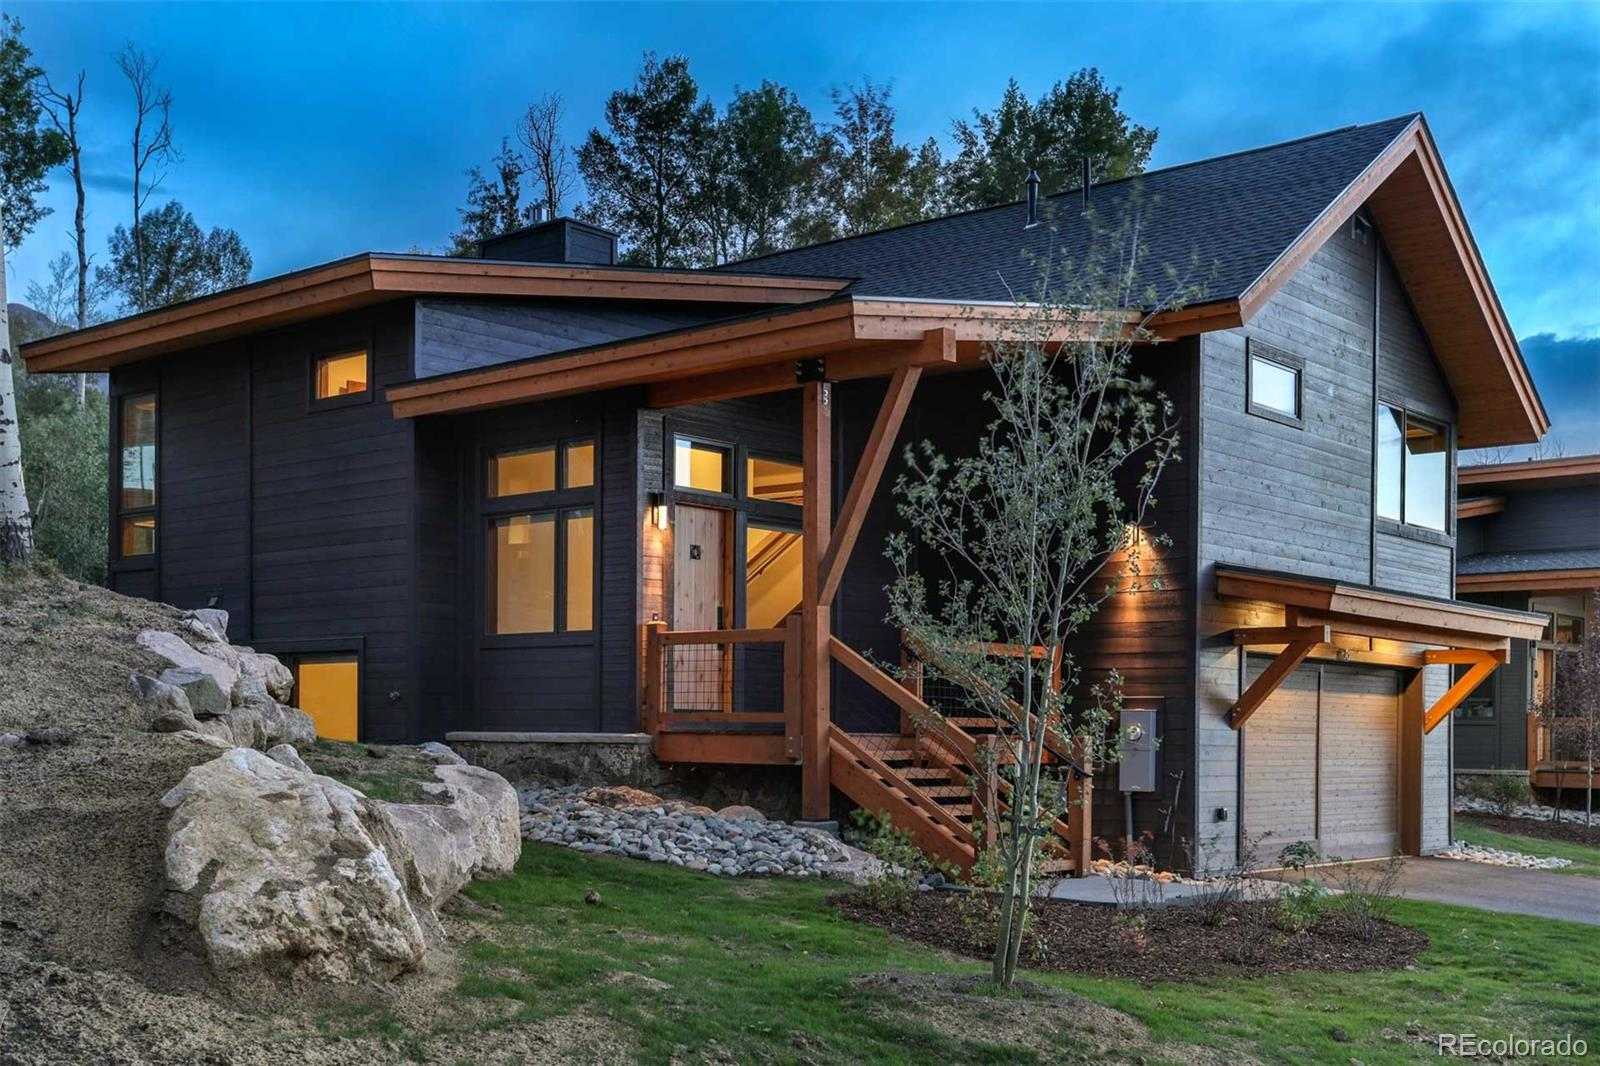 73 W Baron Way, Silverthorne, CO 80498 - Silverthorne, CO real estate listing